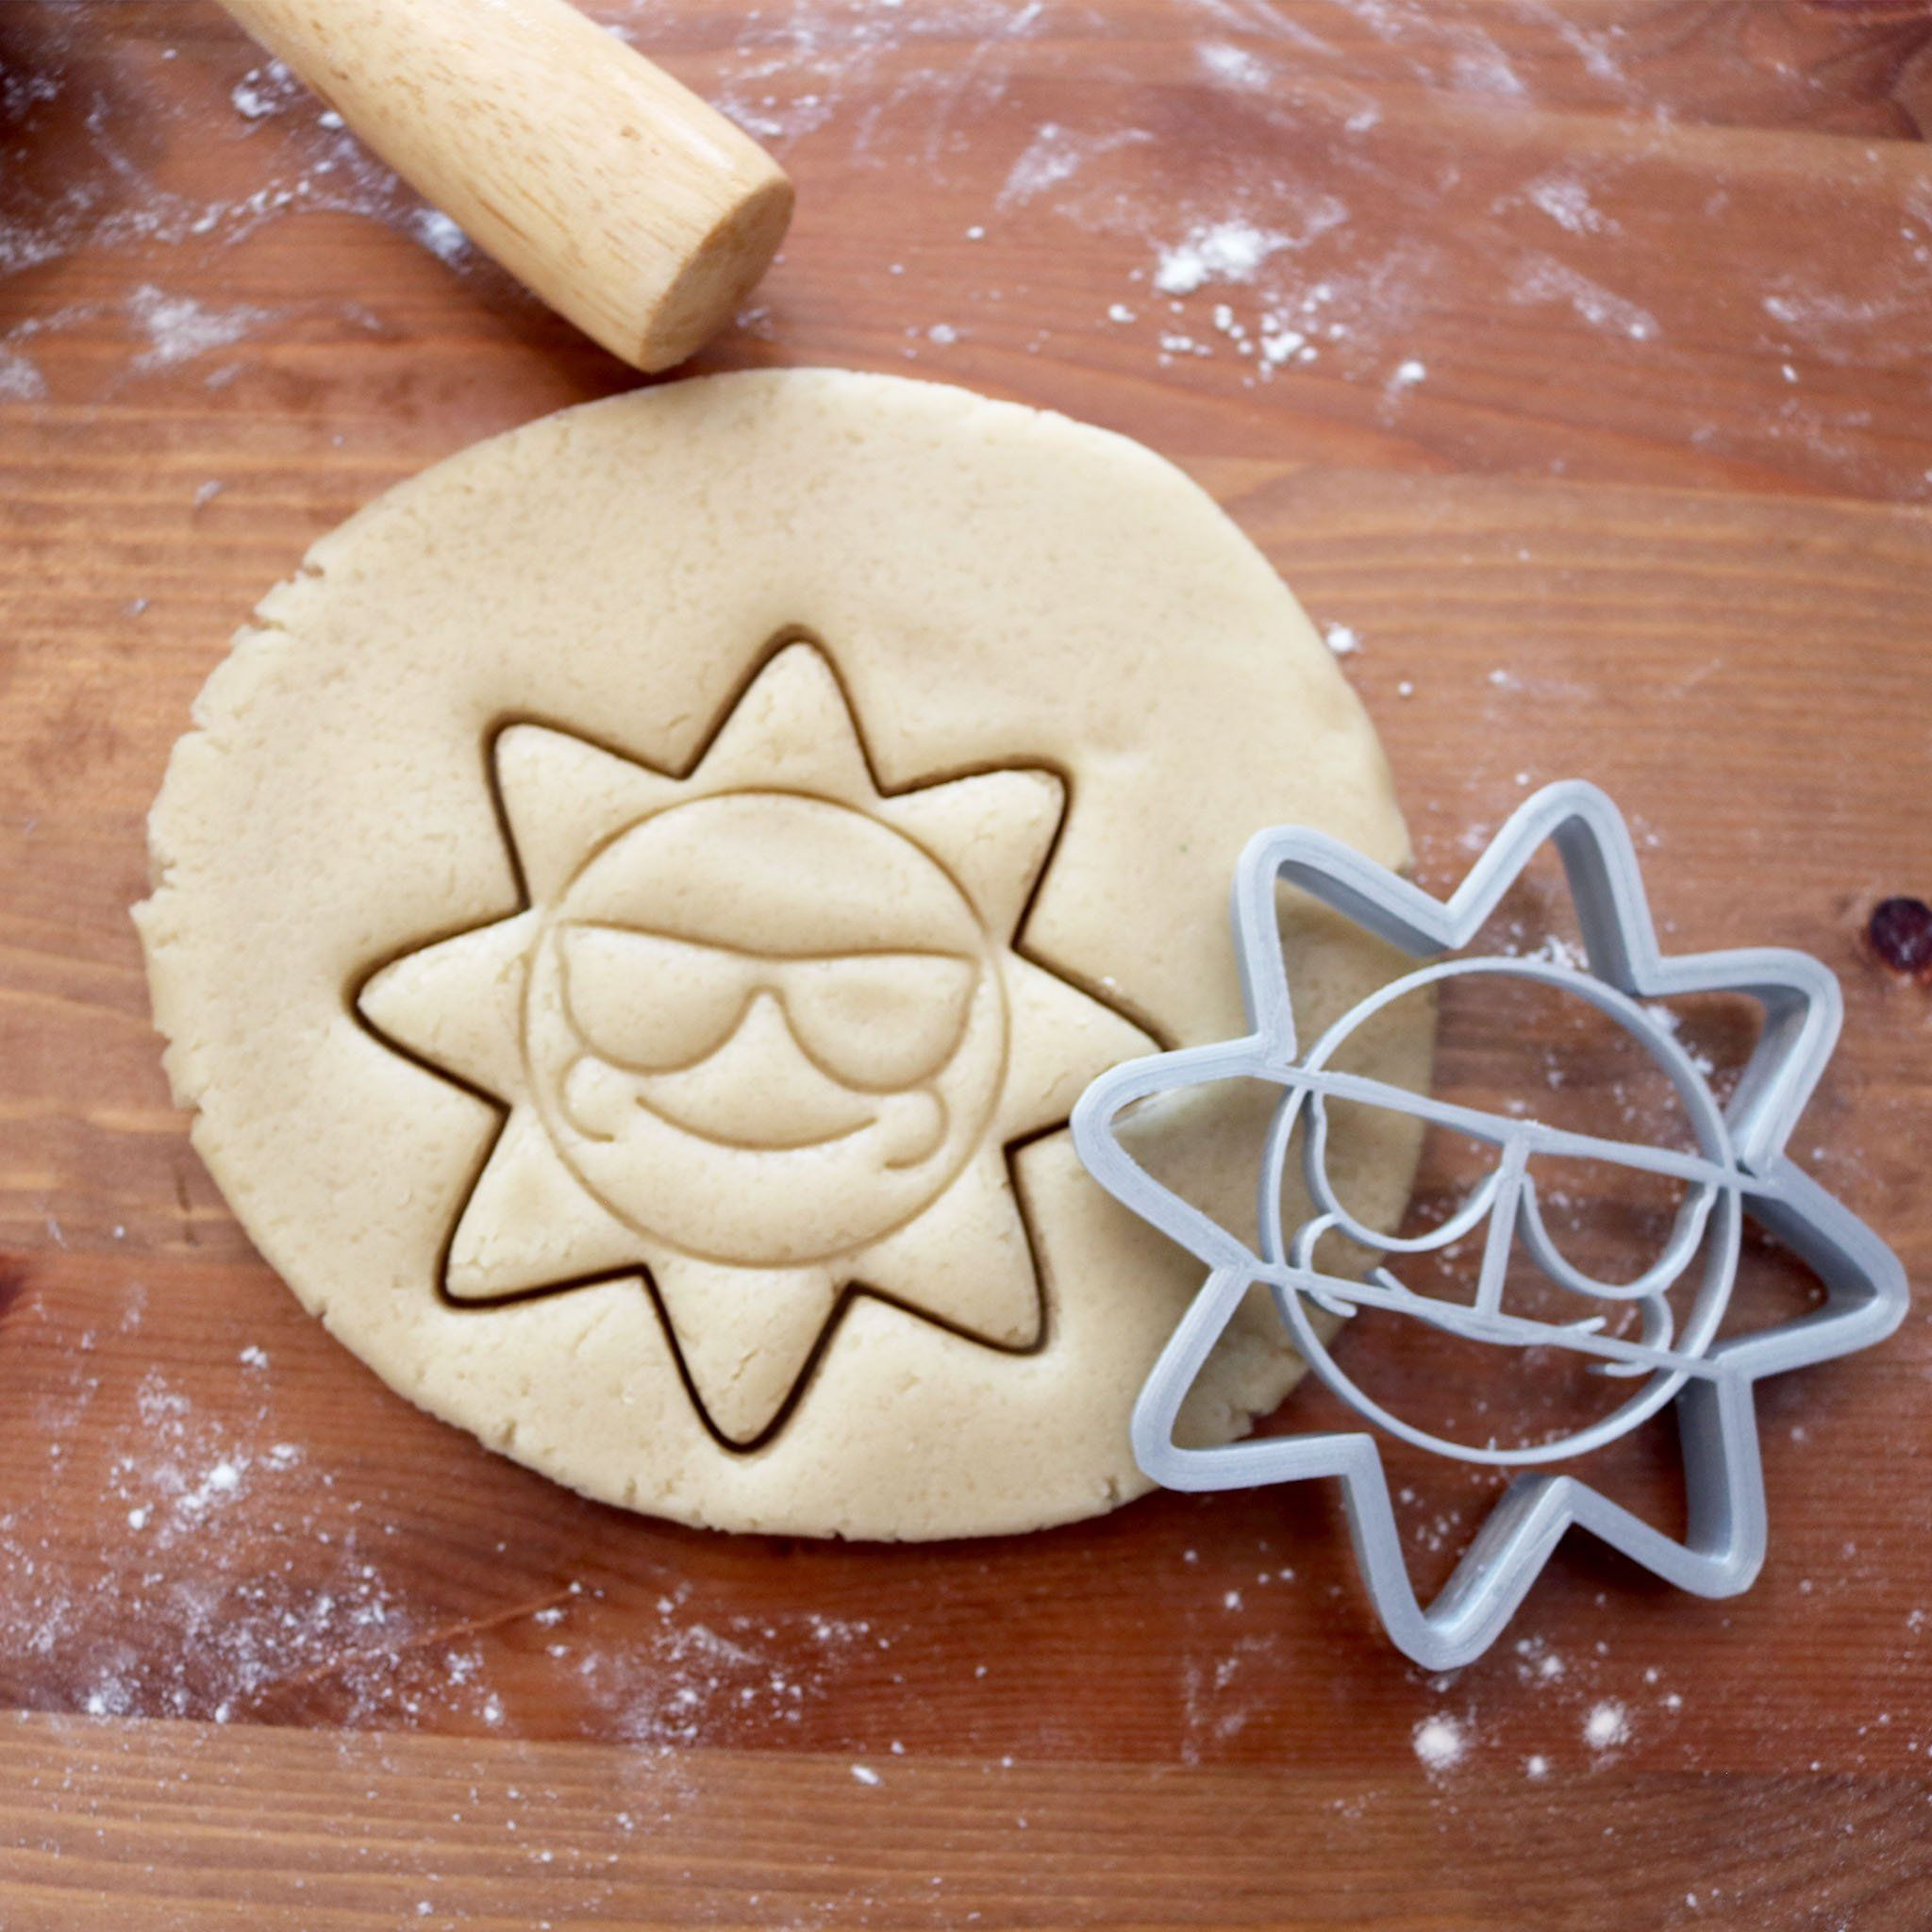 Chilling Sun Cookie Cutter